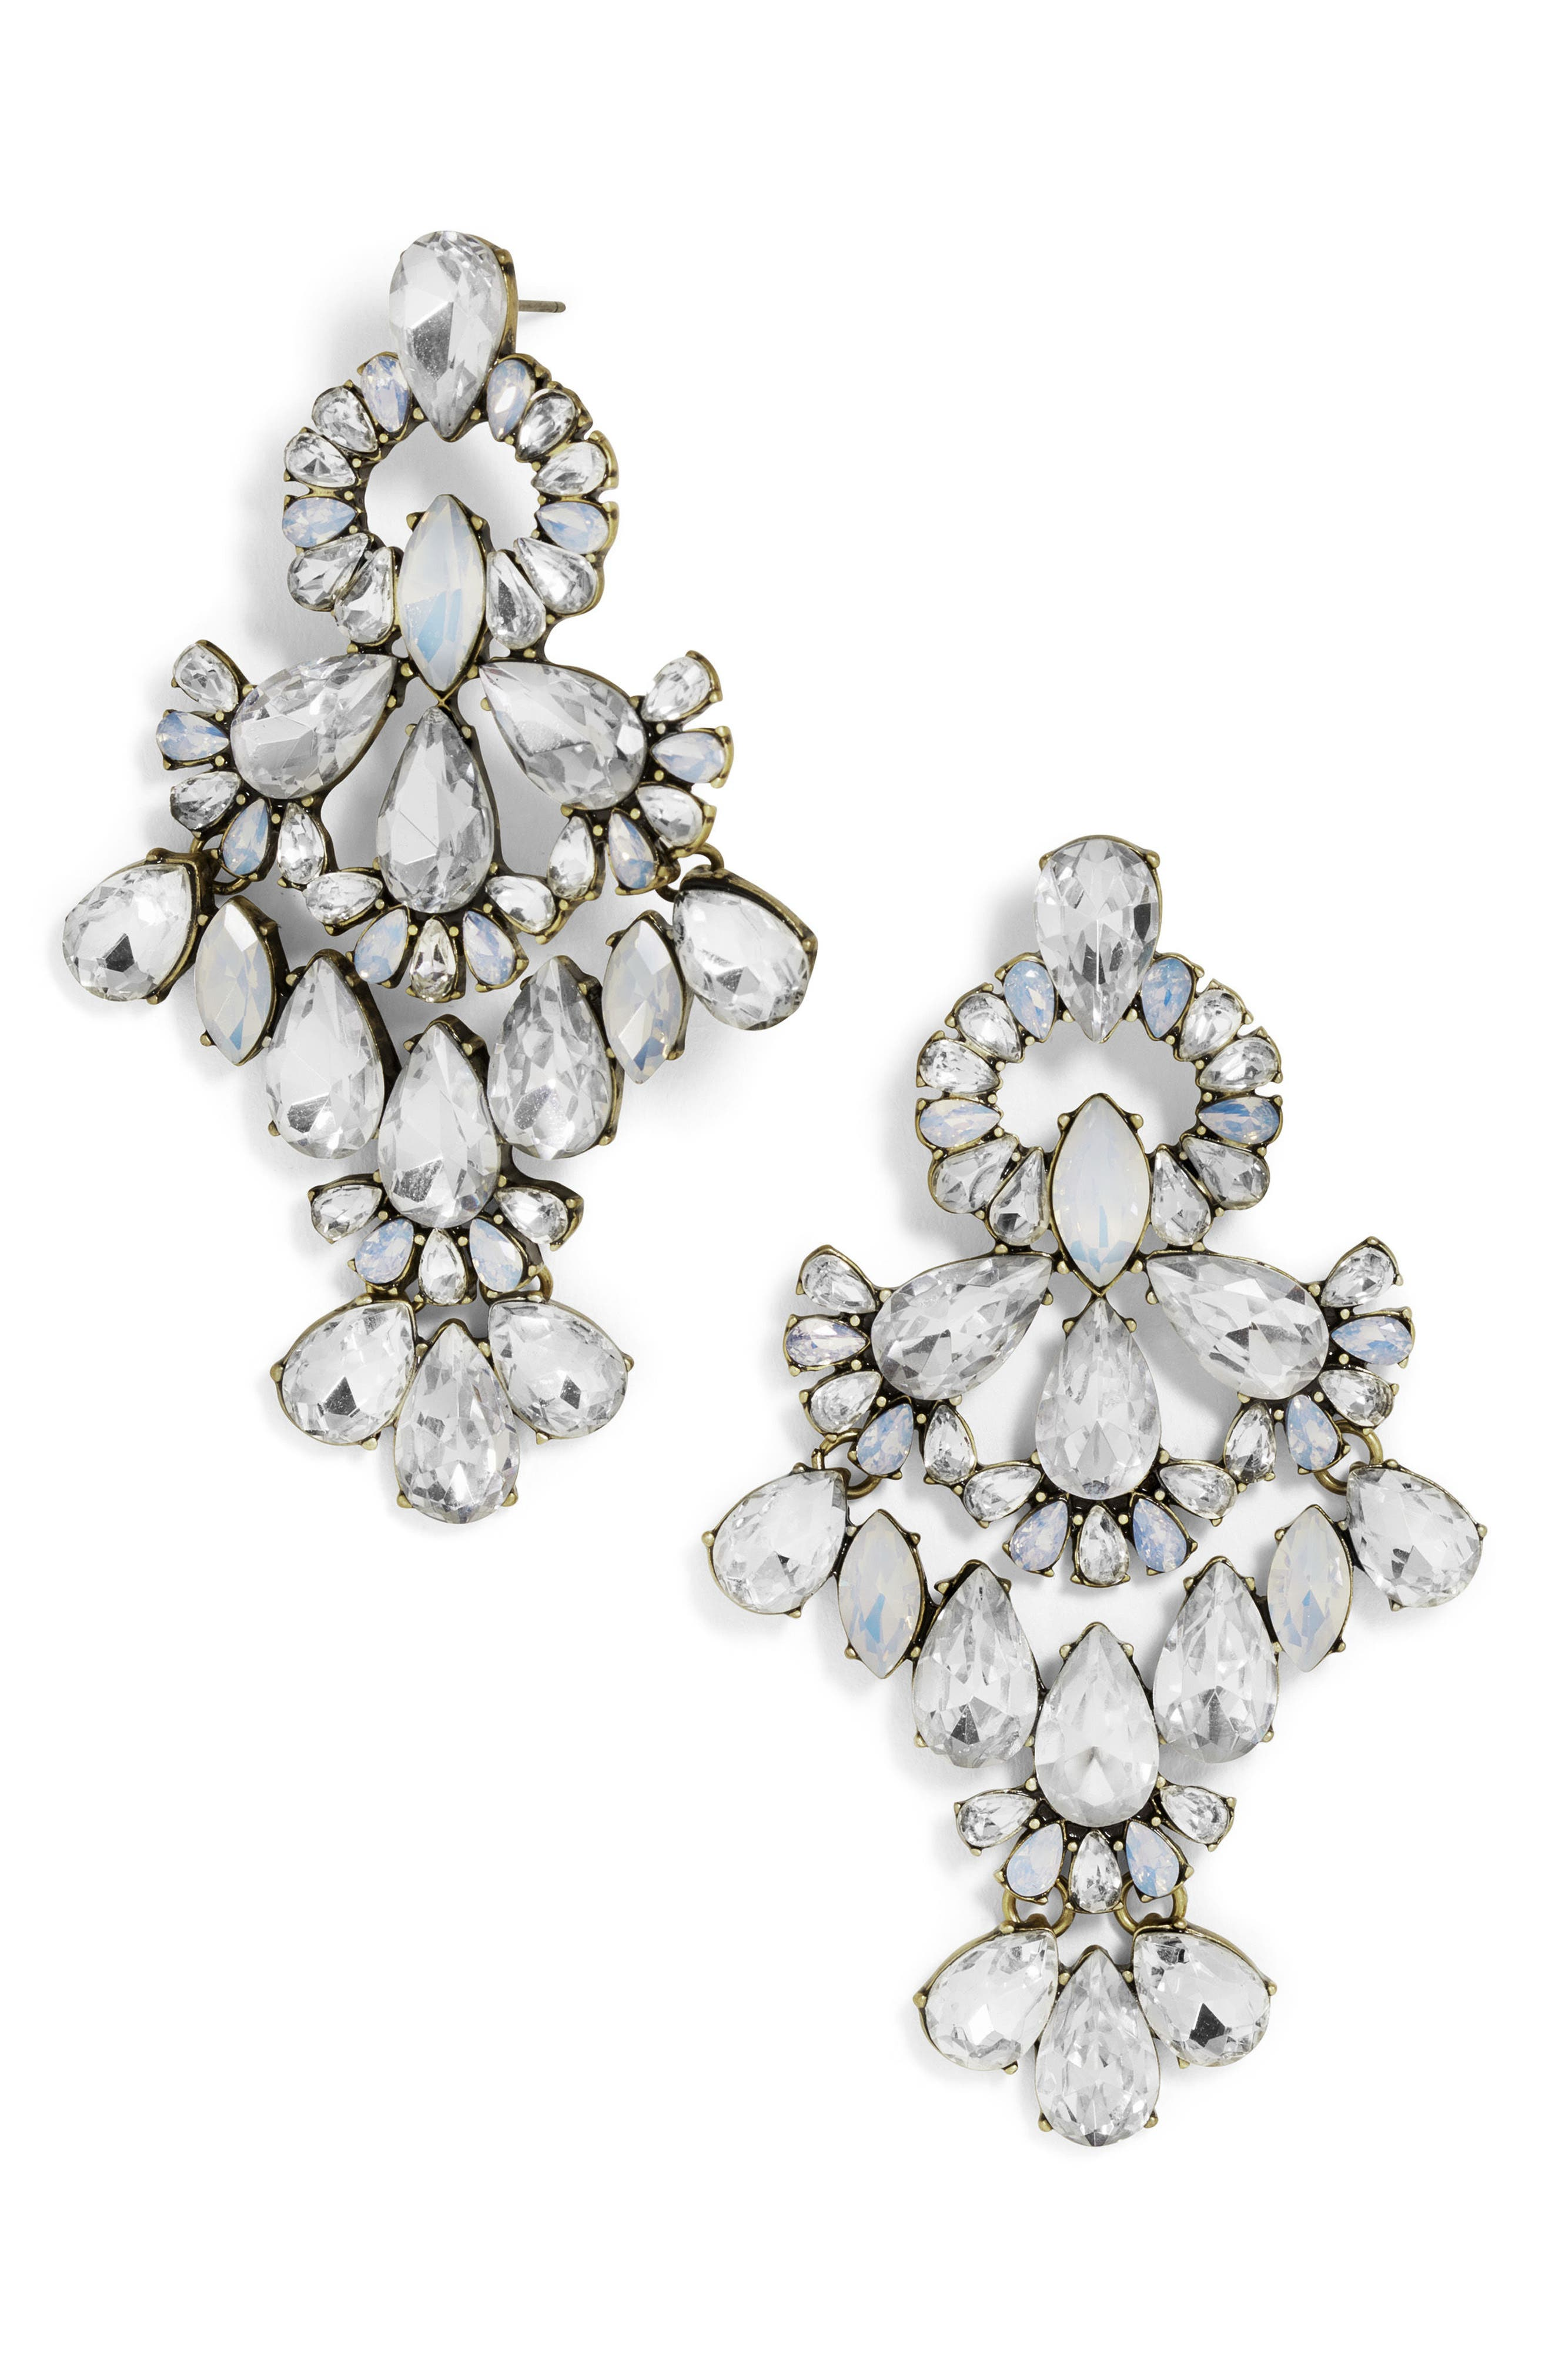 Symphony Crystal Statement Earrings,                         Main,                         color, Antique Silver